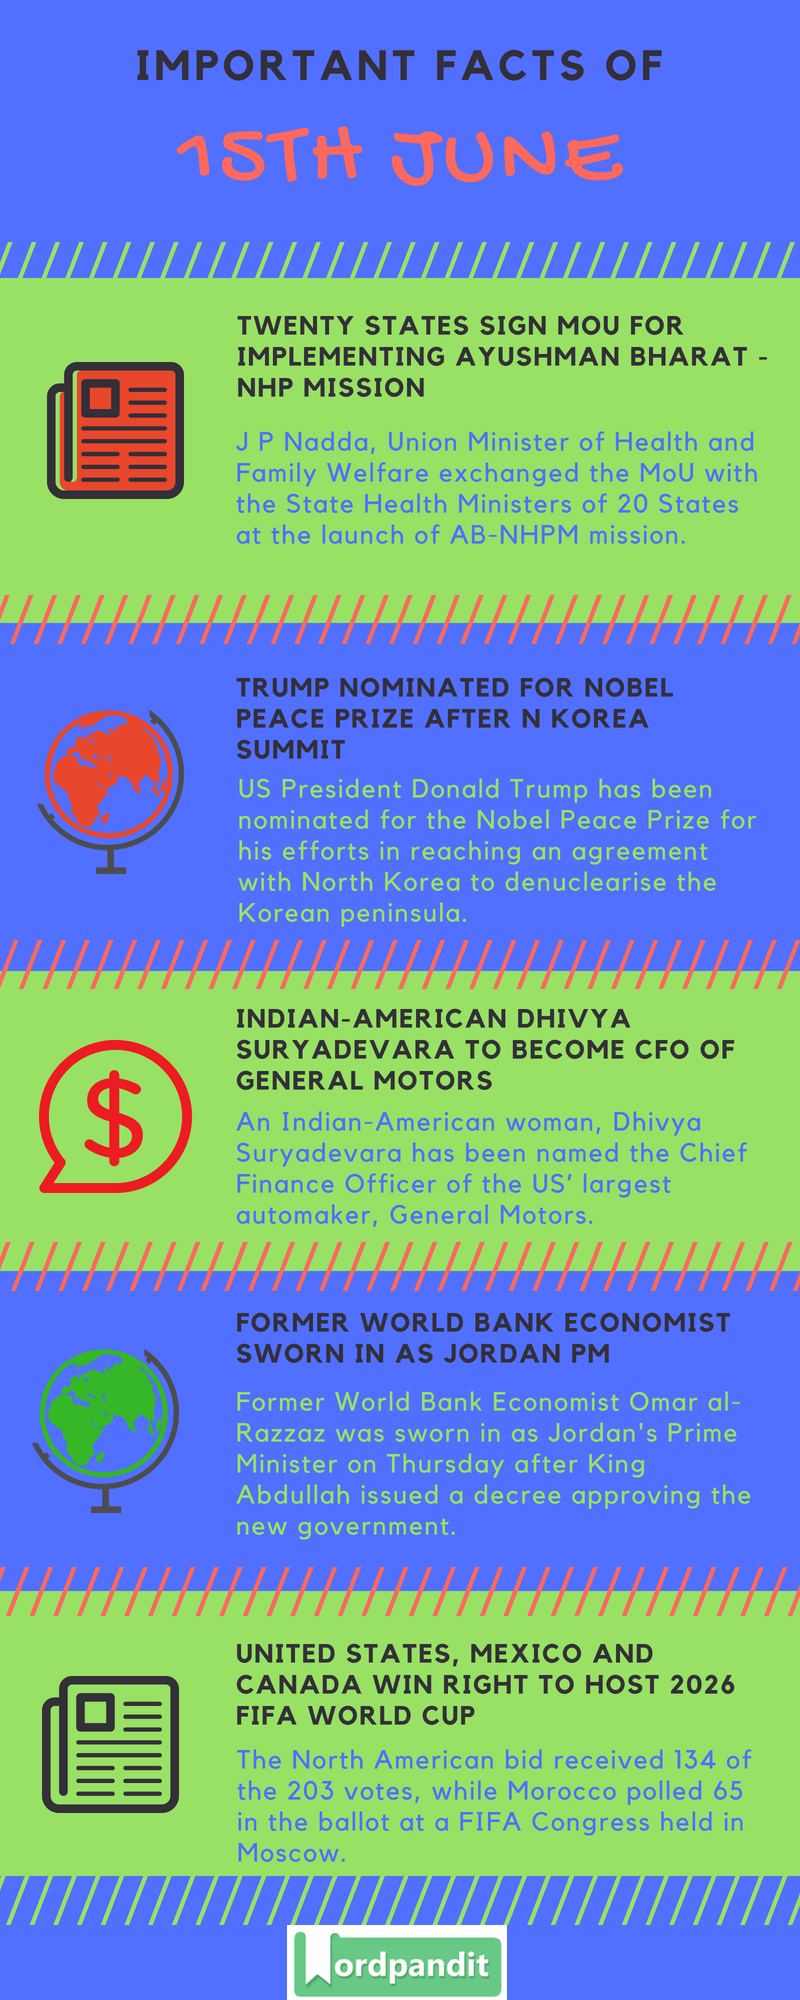 Daily Current Affairs 15 June 2018 Current Affairs Quiz June 15 2018 Current Affairs Infographic